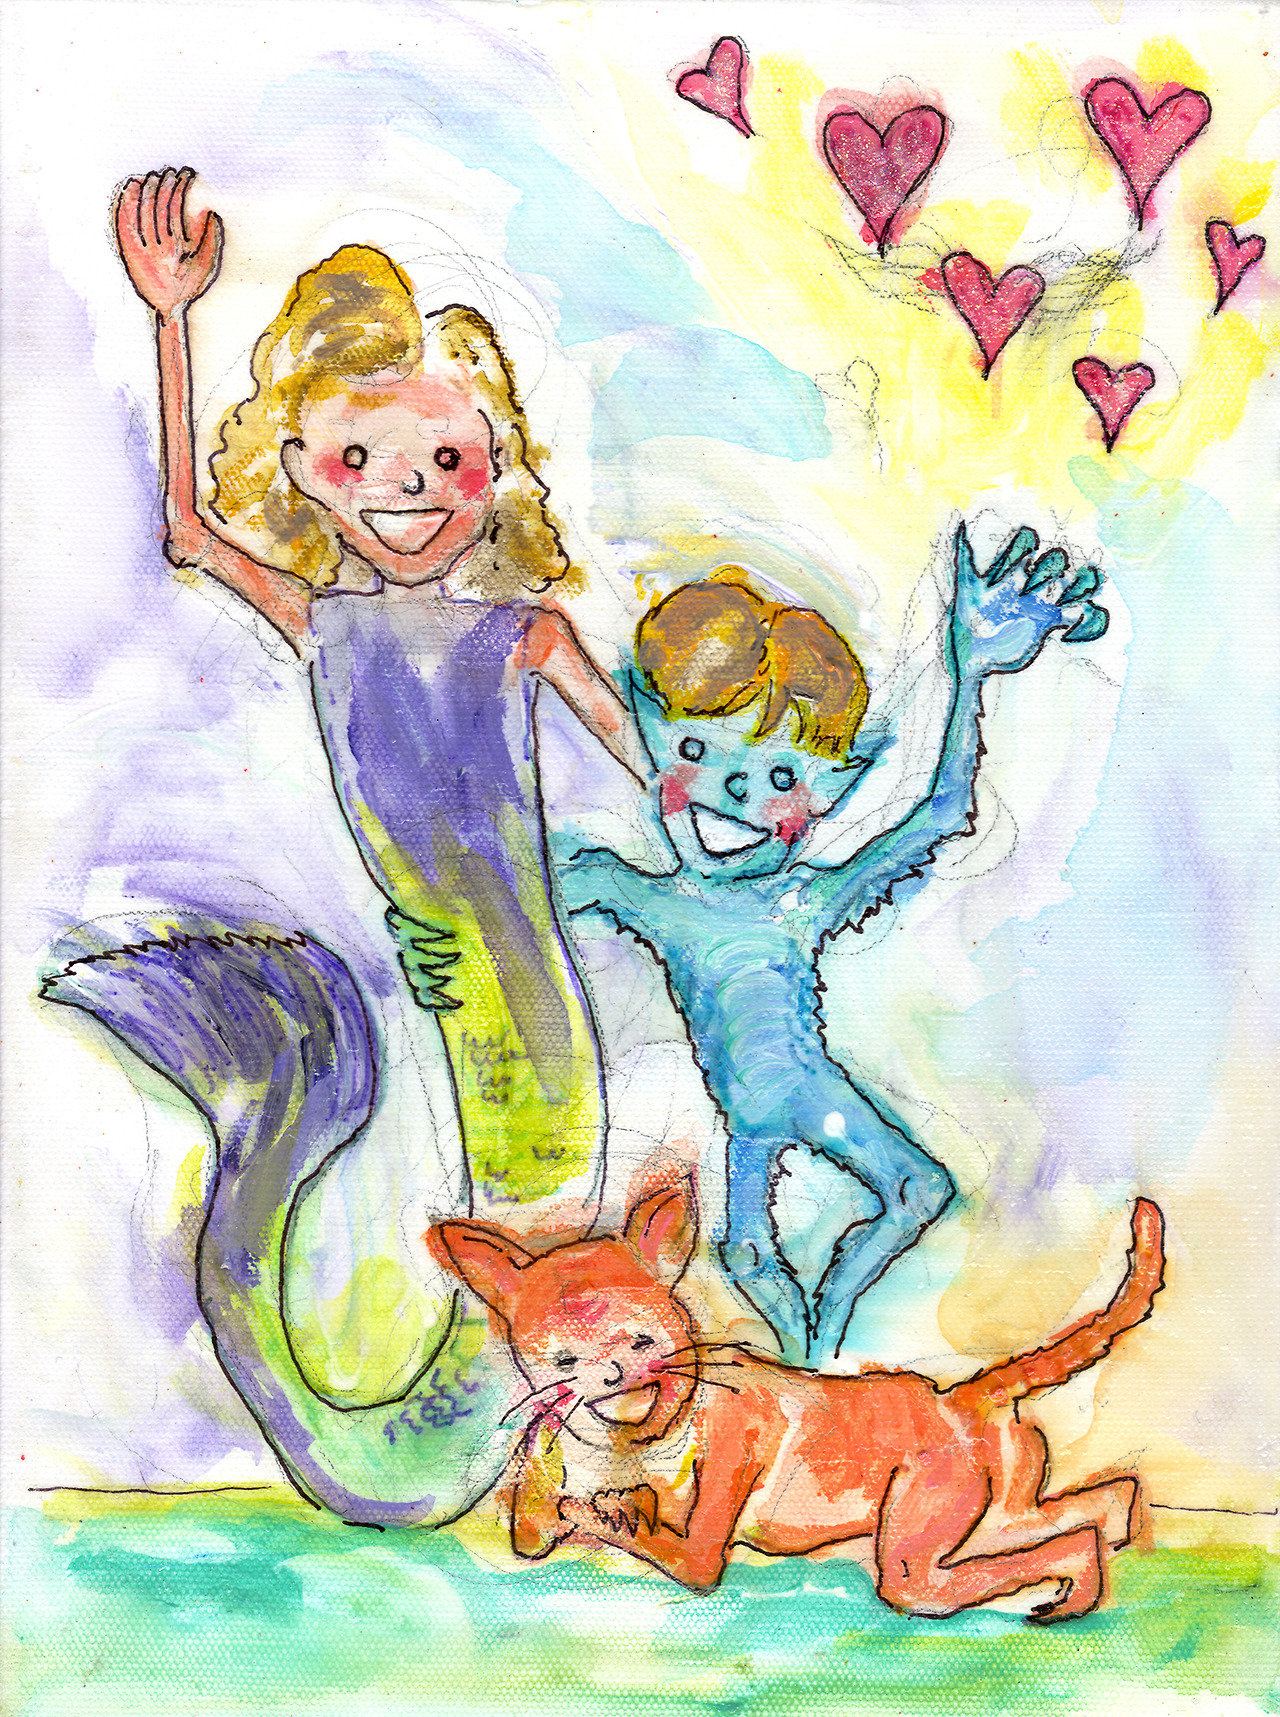 12/11/13 -  Rambunctious Rascals.    Another kickstarter reward piece. My good friend Kendra wanted an untraditional portrait of her lovely children:Gracelyn, Abraham, and William. She gave me some great descriptions of them to work with and, well, here's the result! I hope you like it, Kendra! Thanks for backing the kickstarter!